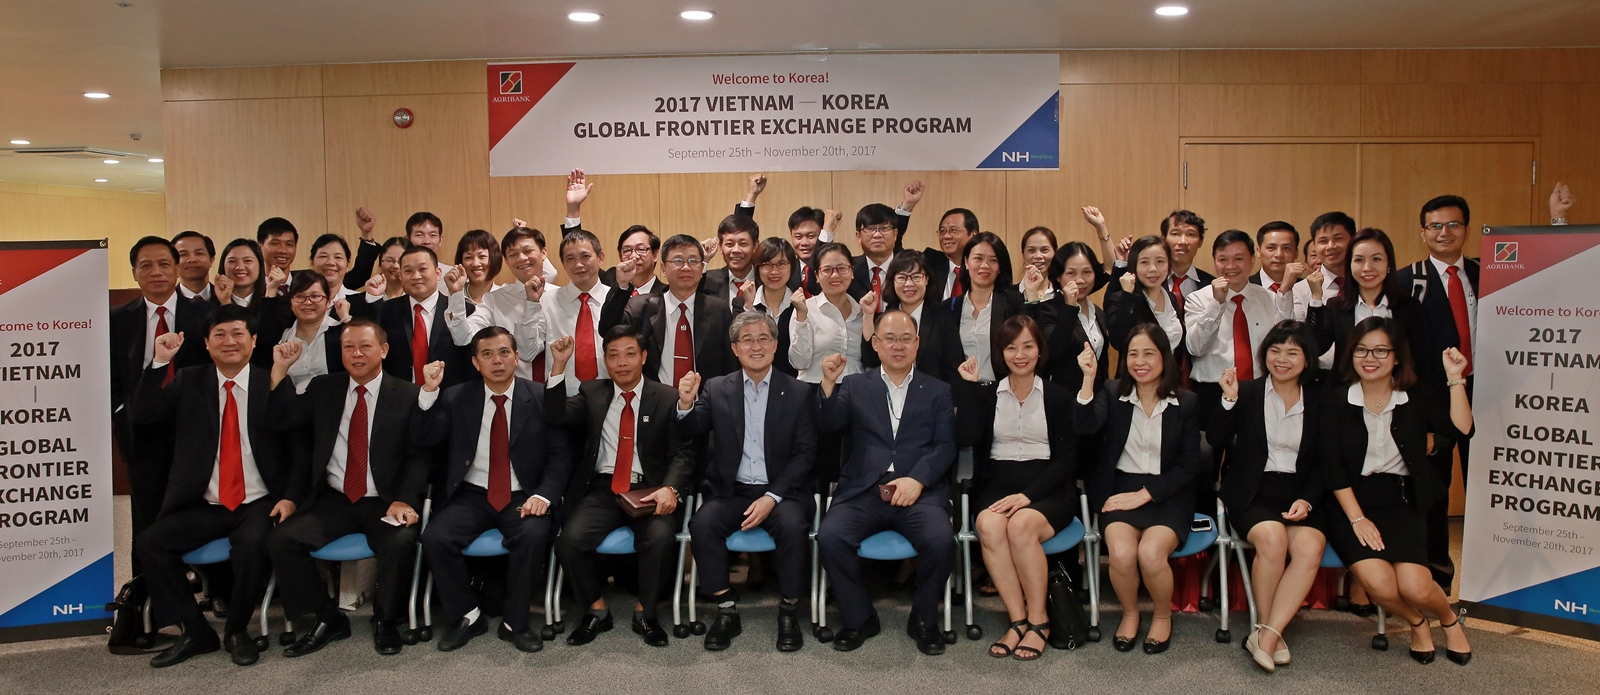 NH Bank Vice President Hong Jae-eun (fifth from left in front row) and Lee Chung-no (sixth from left in front row), Deputy Director at National Agricultural Cooperative Federation, pose with Agribank staff members from Vietnam. (photo courtesy: NH BanK)